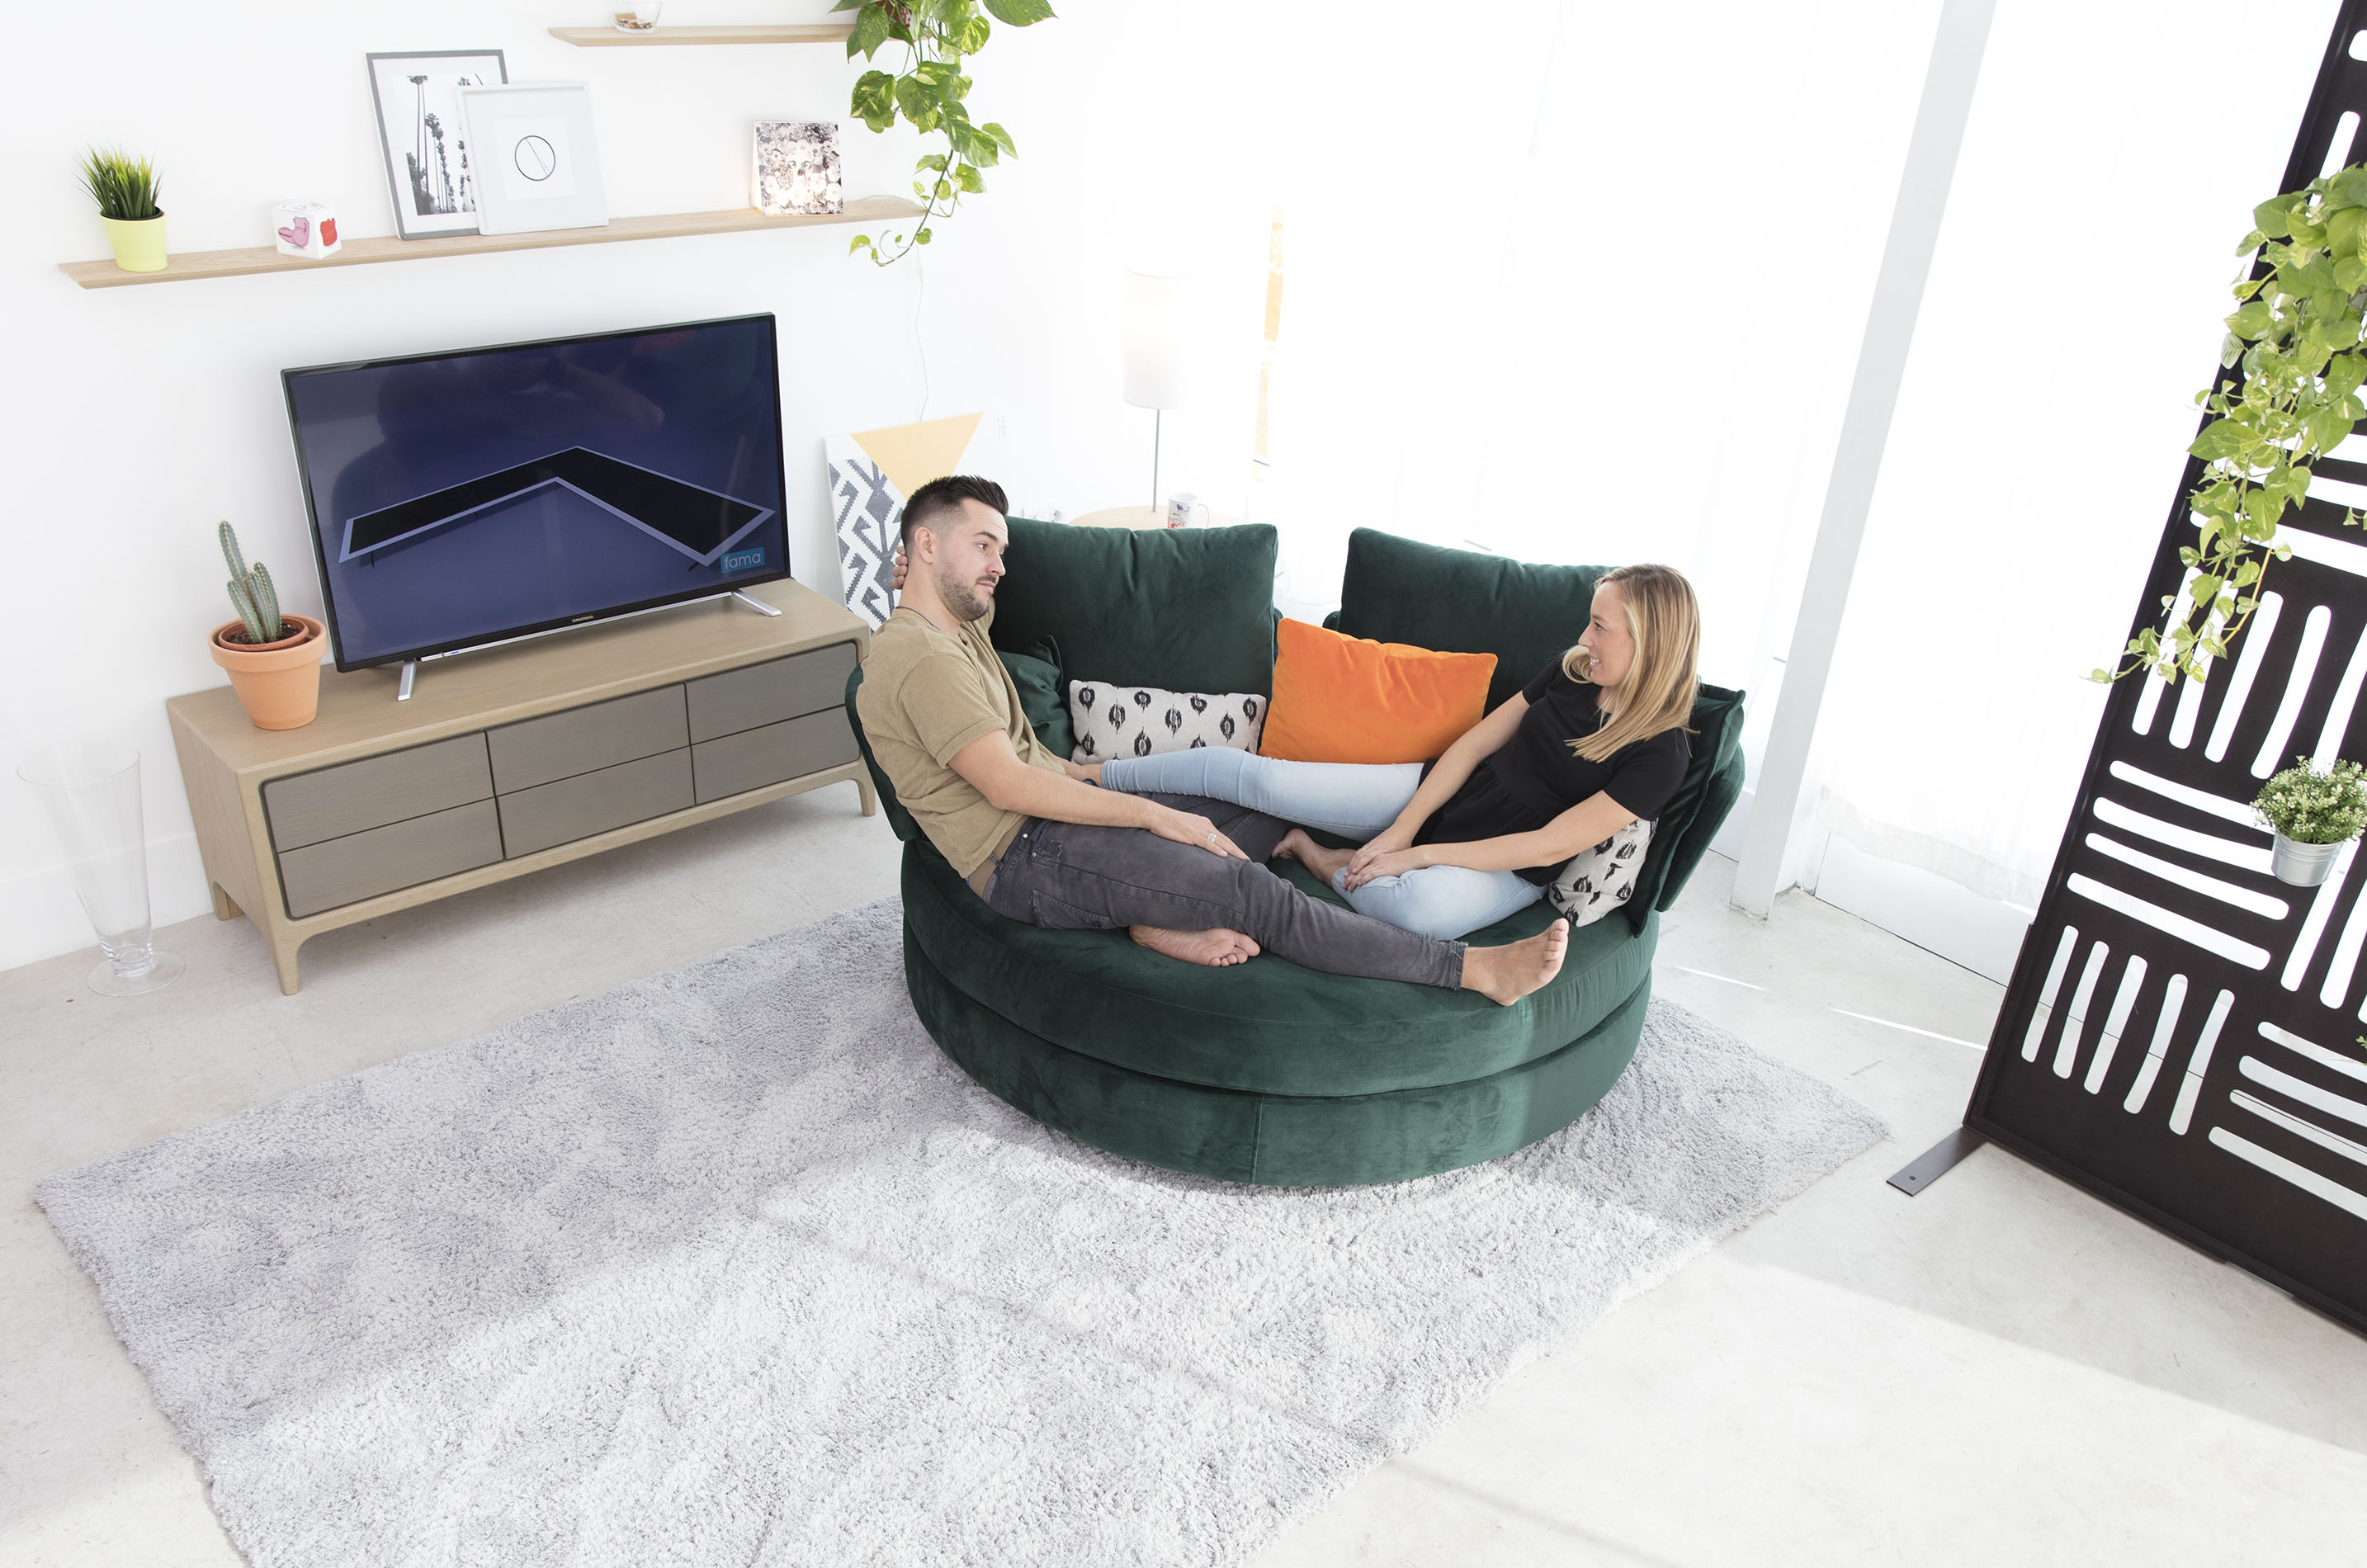 green velvet chair for 2 people that turns around with no legs, chair that can adjust the fabrics to your style,